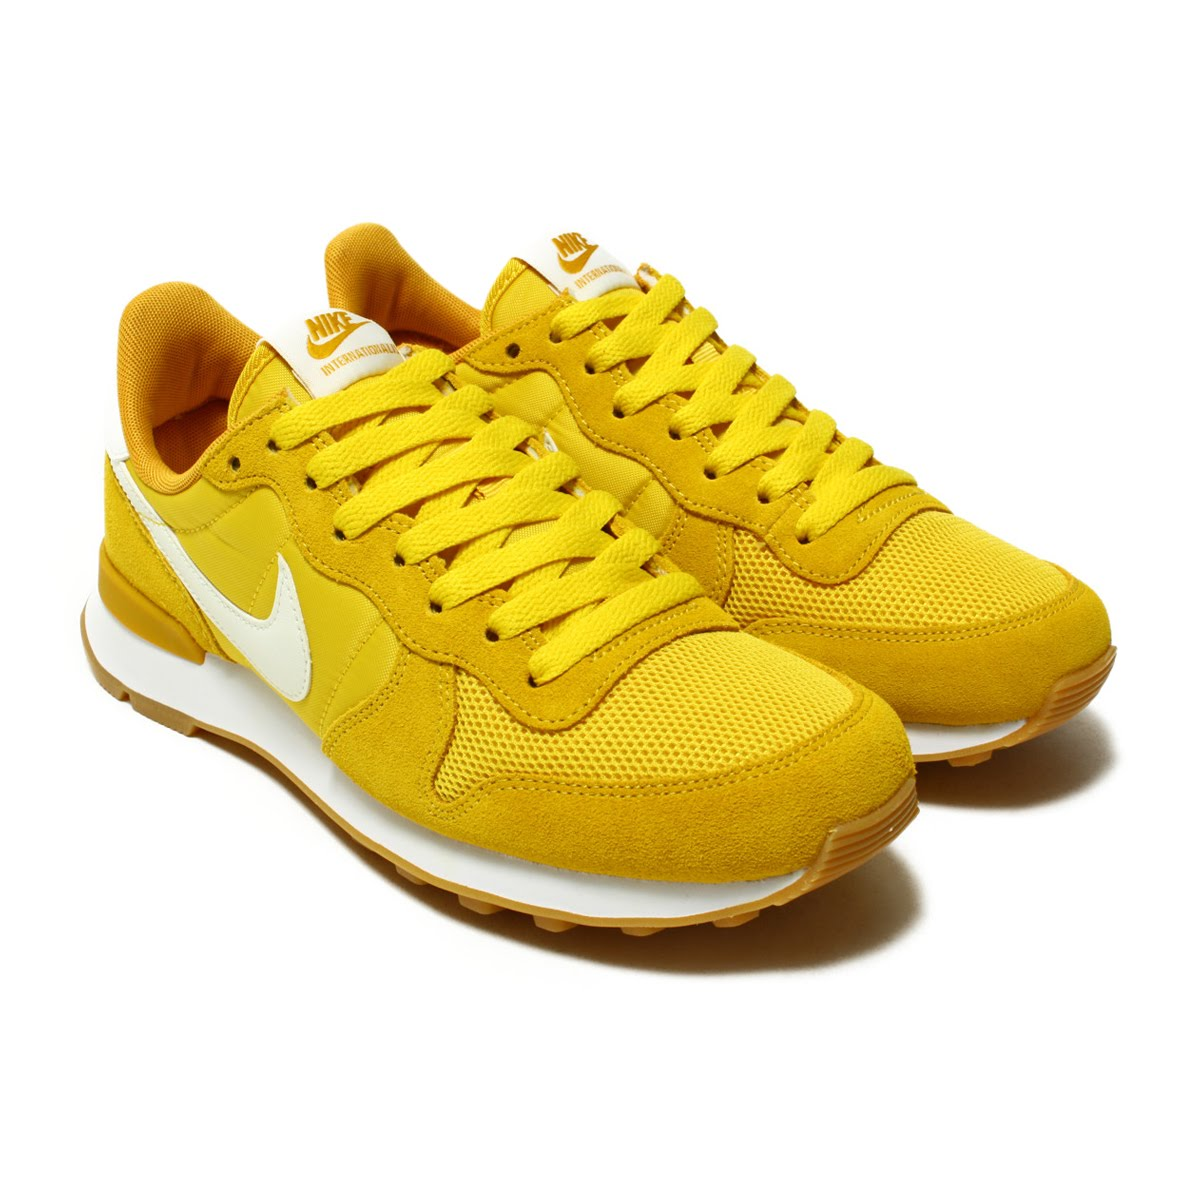 sports shoes 77e30 c943d The design which is Aiko Nic based on nostalgic running-style of Nike.  Covered upper of the combination material with an overlay of the leather,  ...